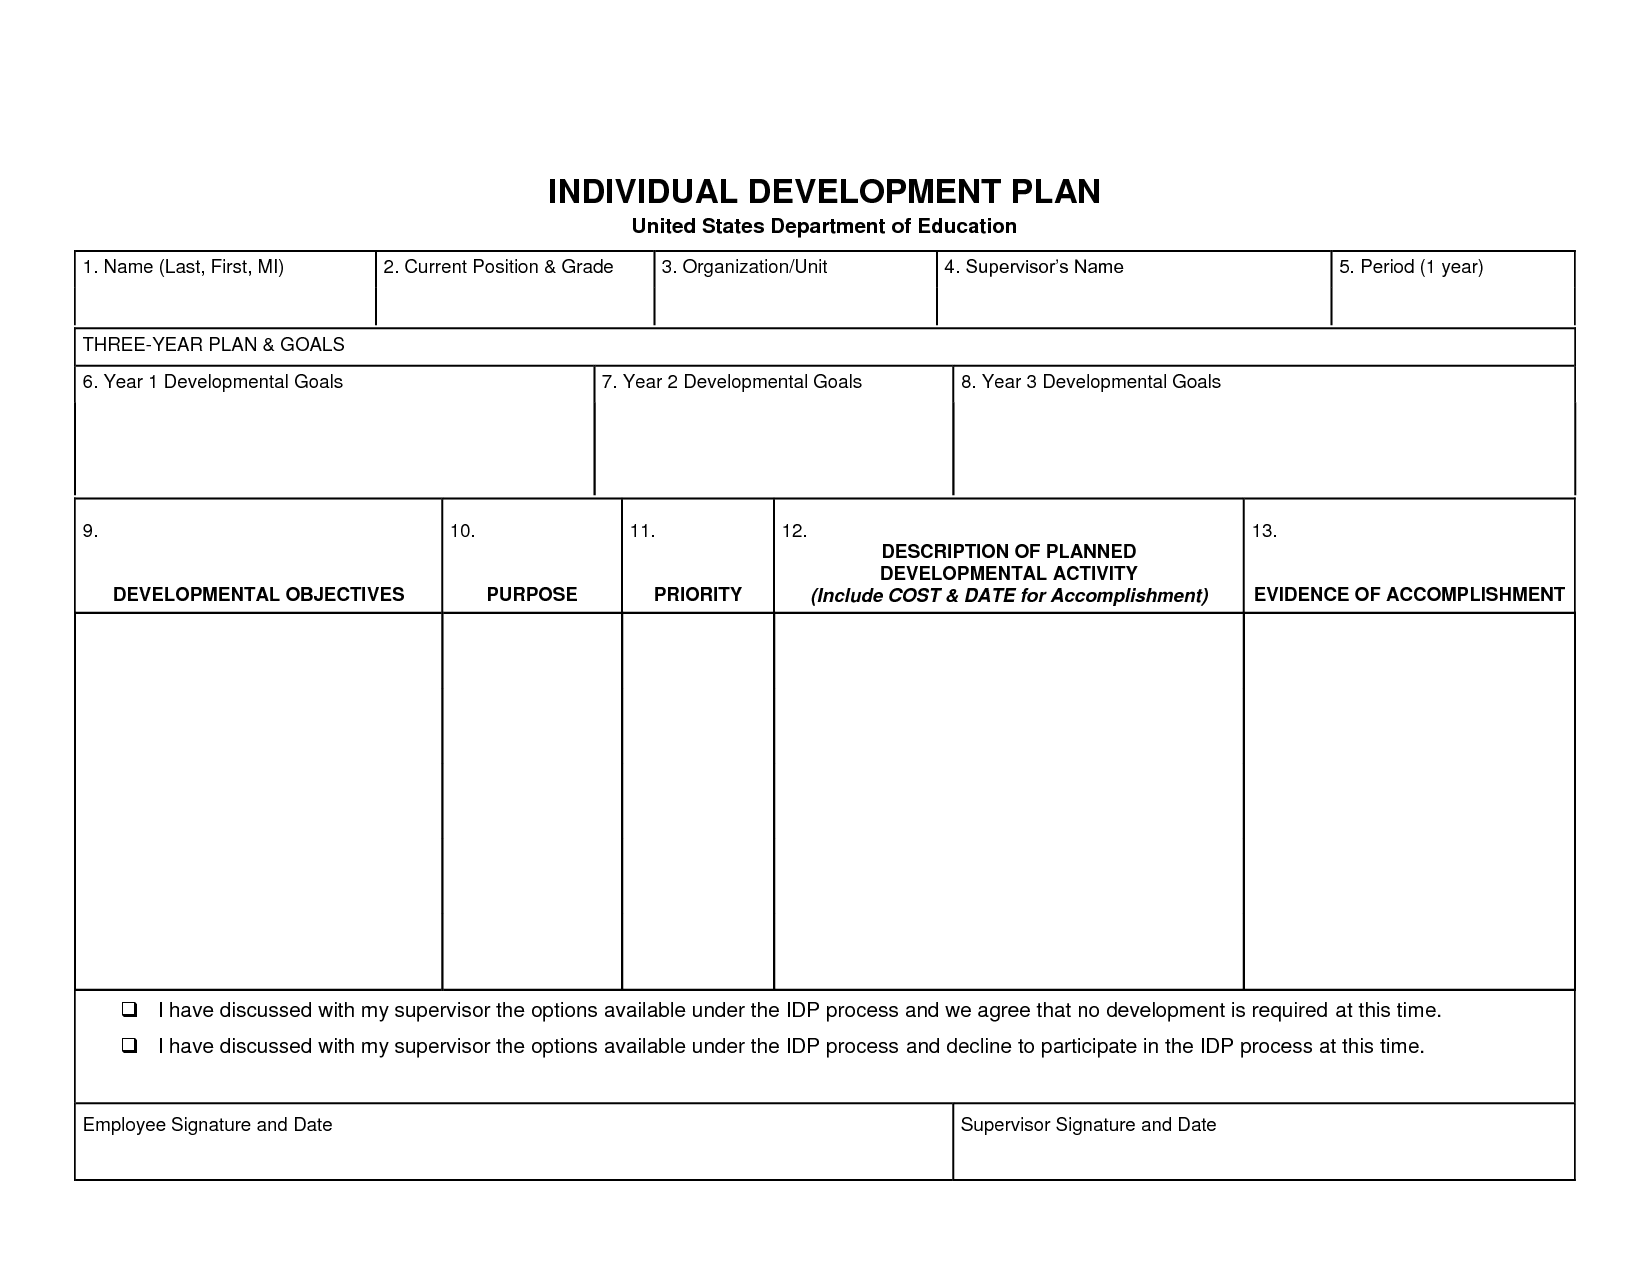 executive succession planning template - individual development plan template word google search